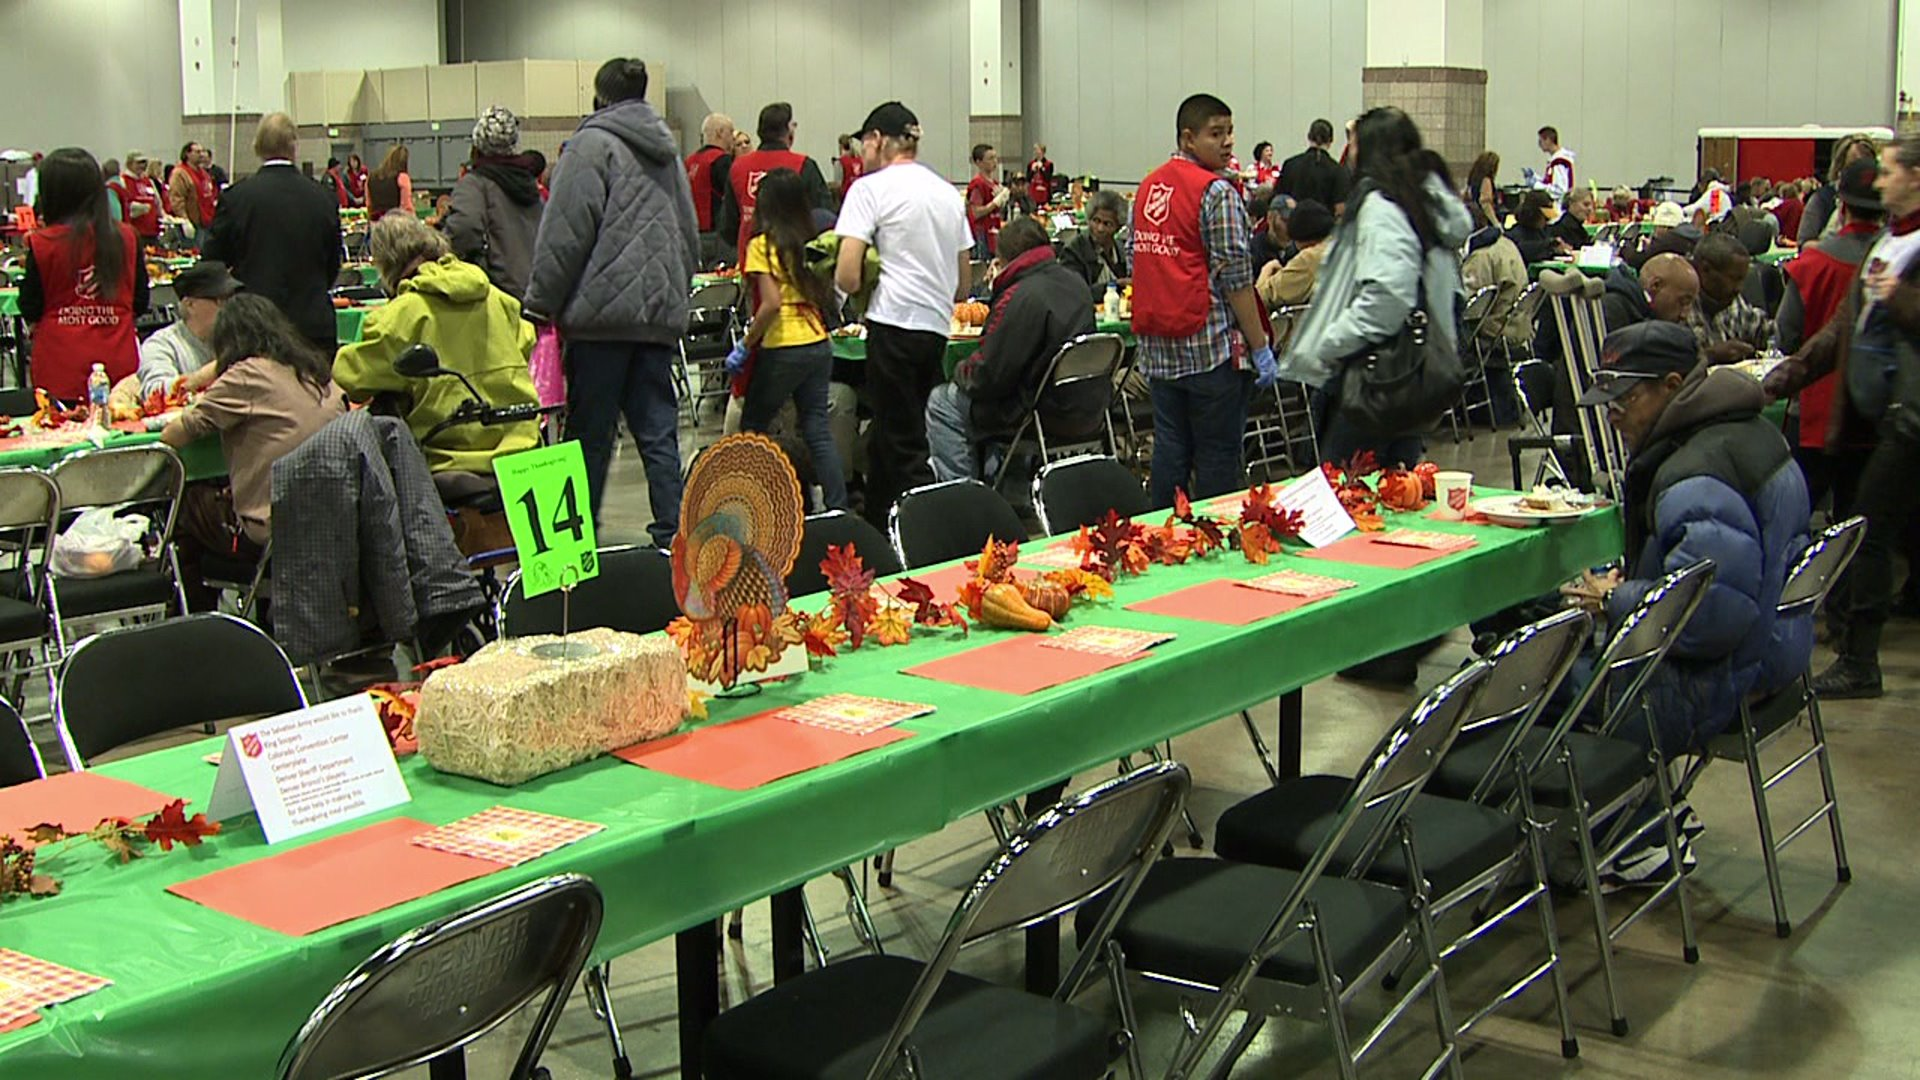 Salvation Army Thanksgiving meal in downtown Denver